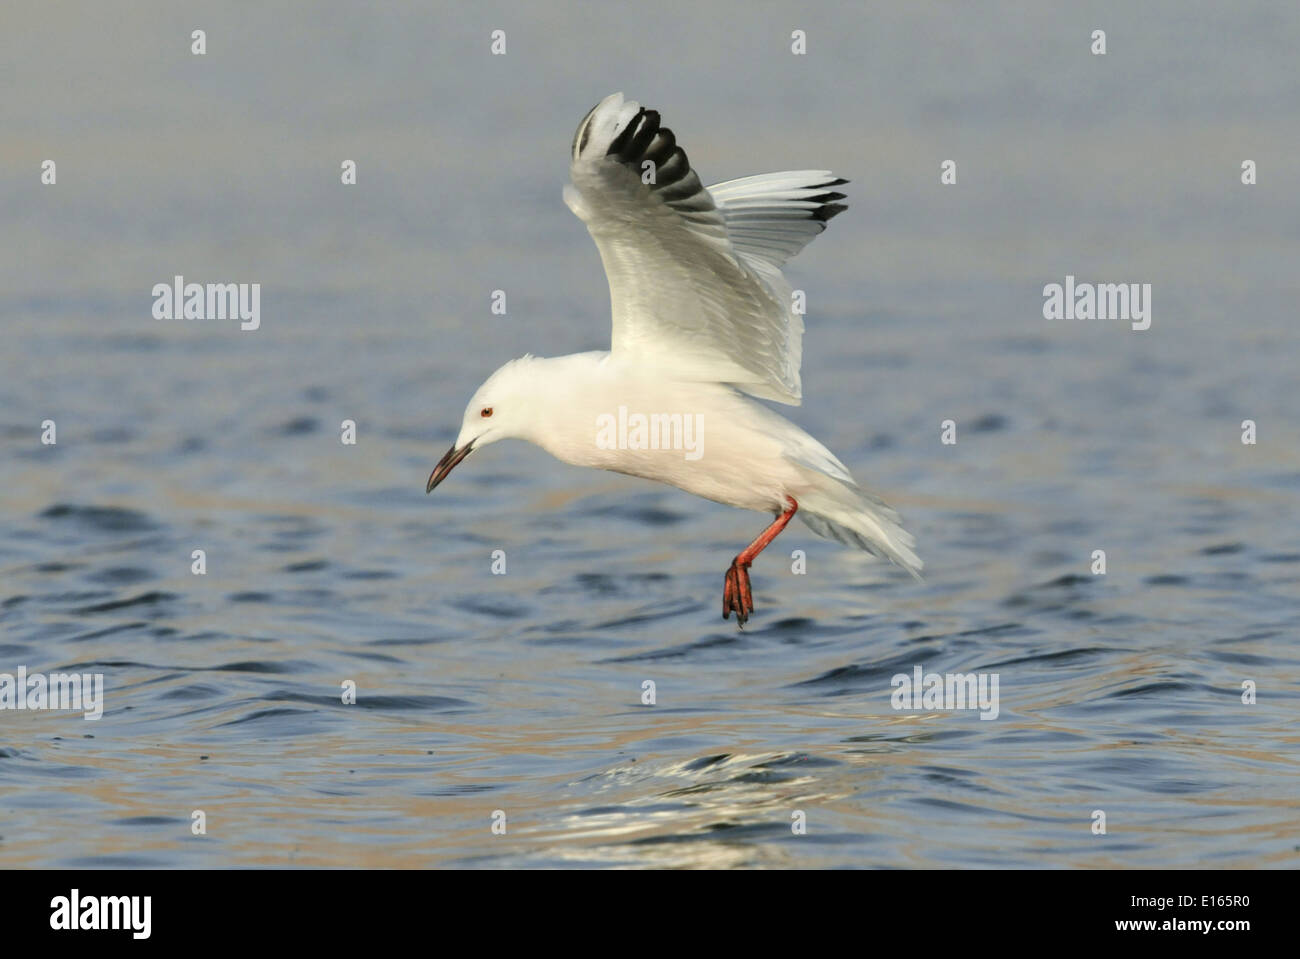 Slender-billed Gull - Larus genei Stock Photo